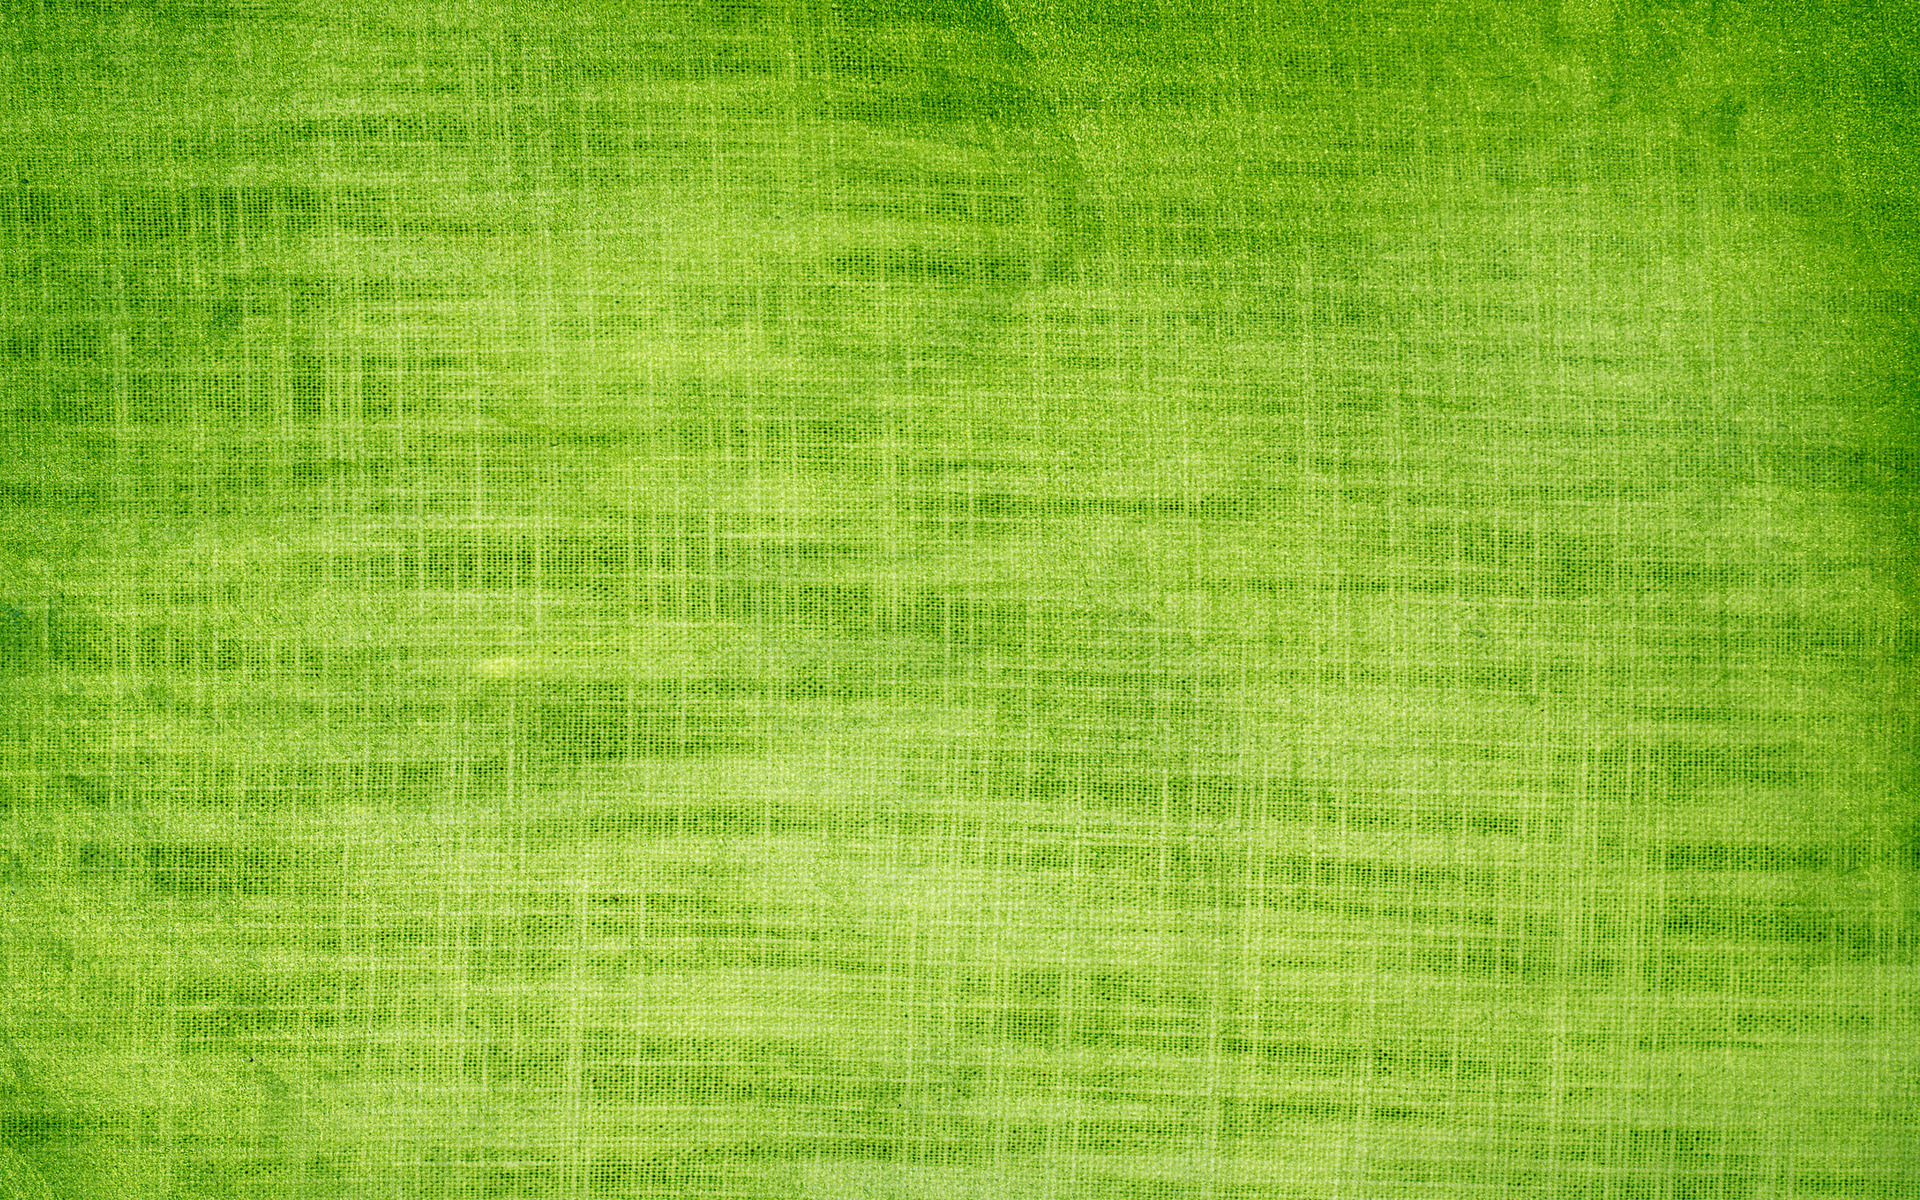 green fabric cloth, download photo, background for design